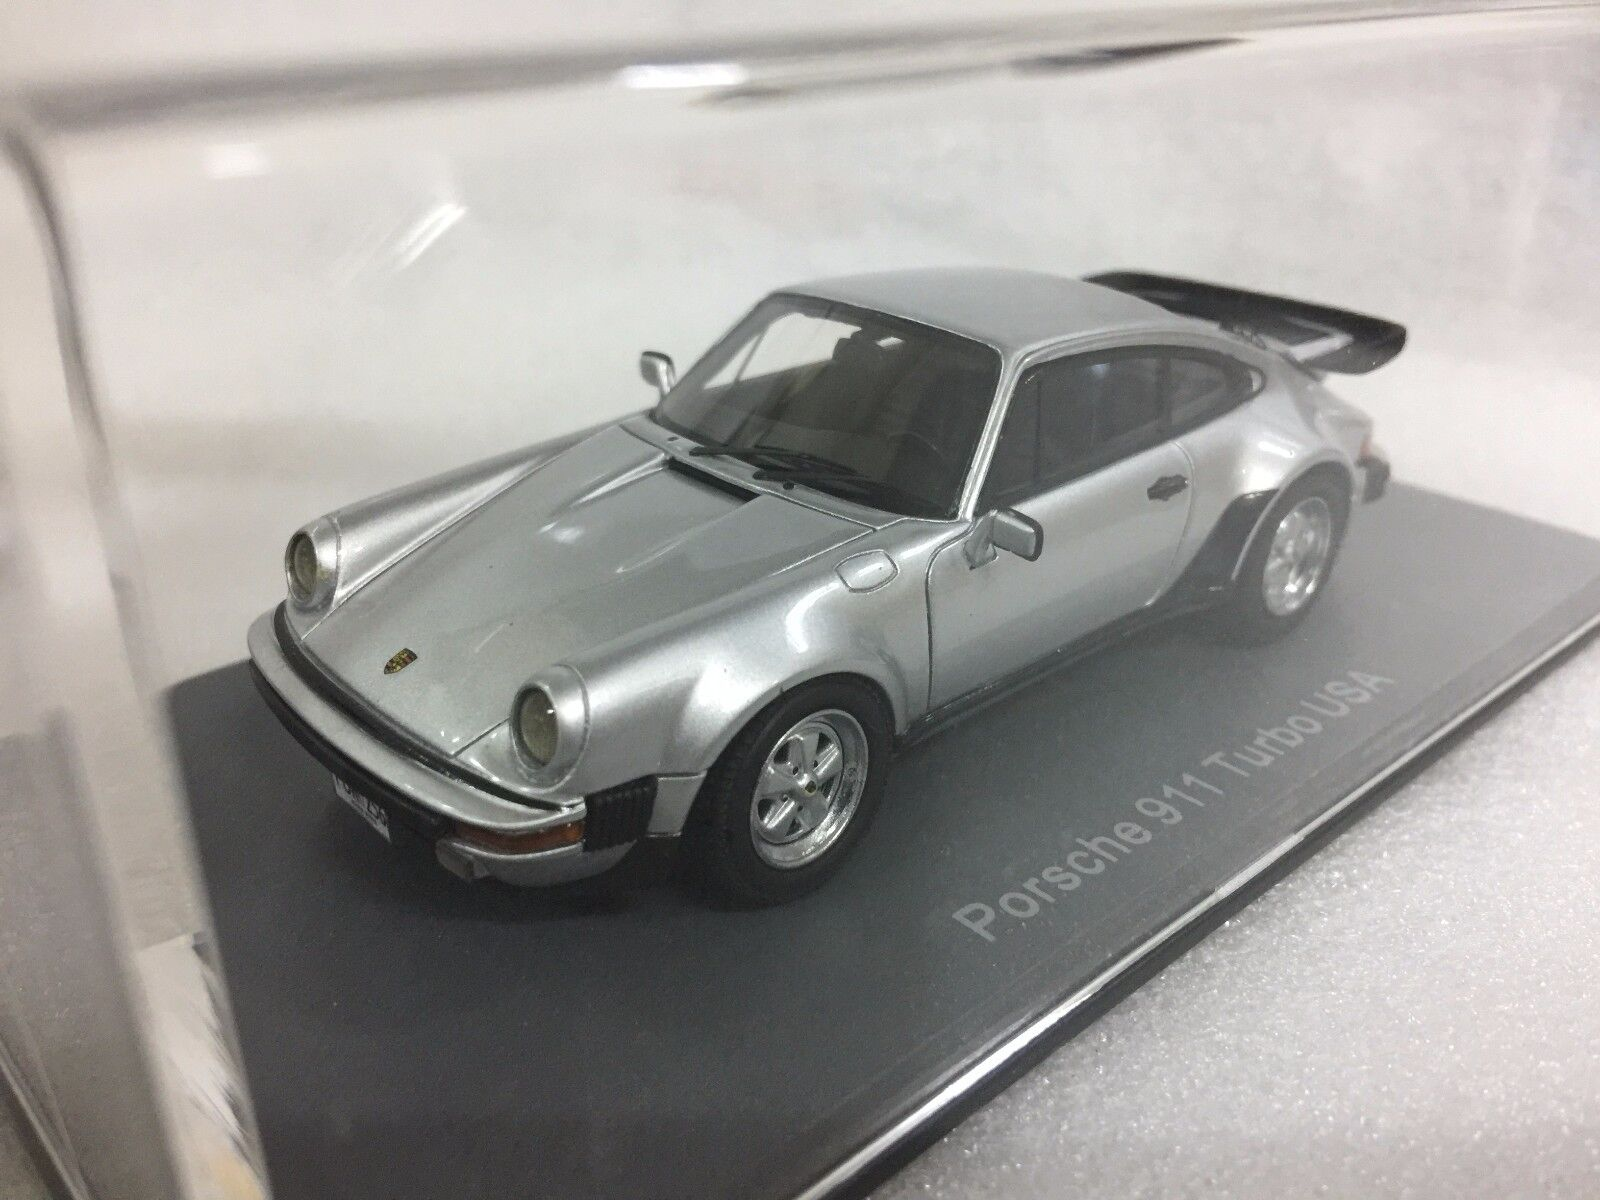 1 43 NEO SCALE MODELS 43256 PORSCHE 911 CARRERA TURBO COUPE US BUMPERS model car